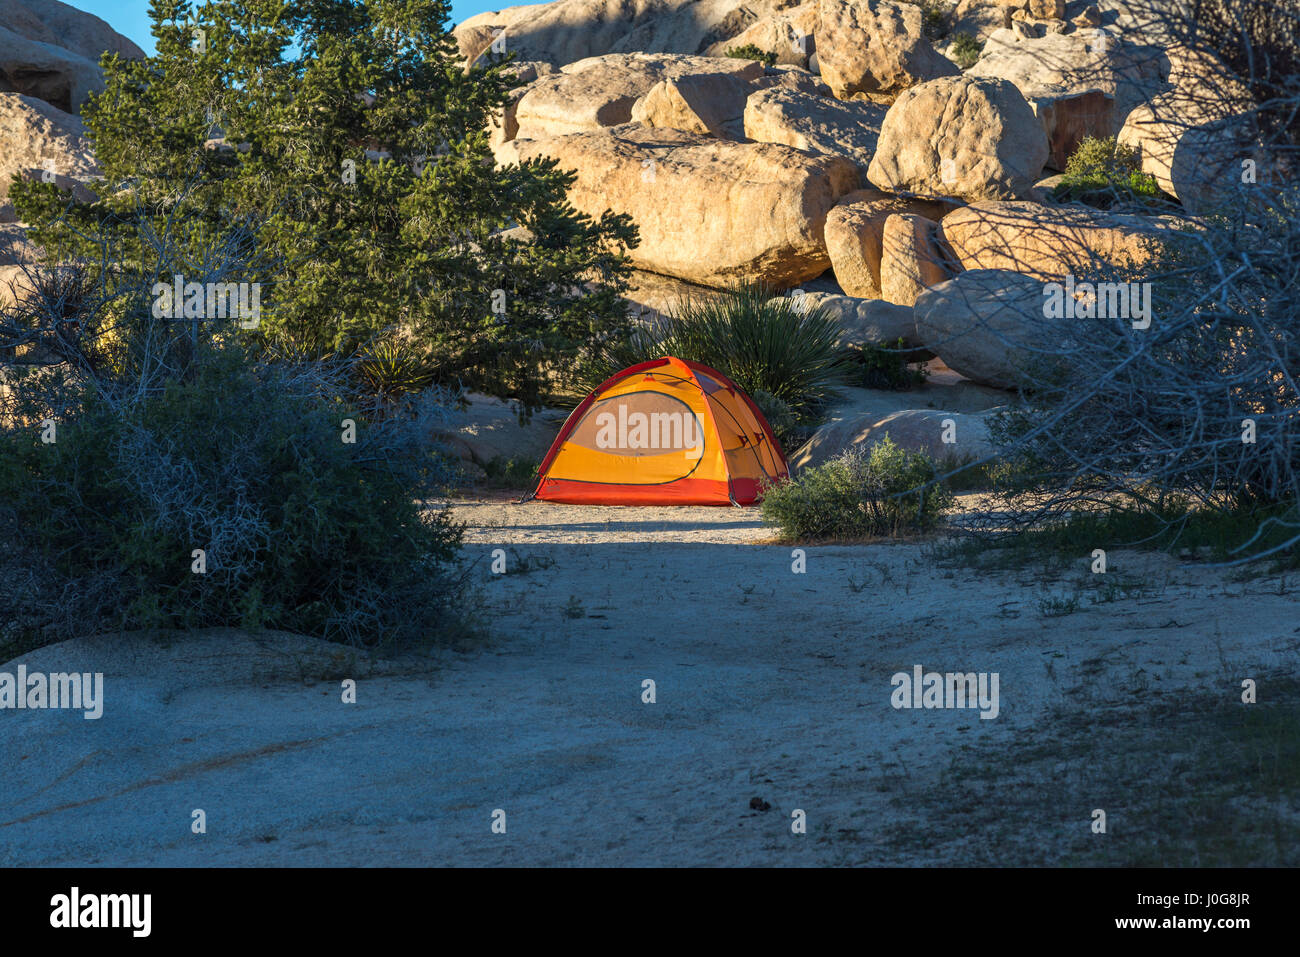 Tente de camping au parc national de Joshua Tree, California, USA. Photo Stock